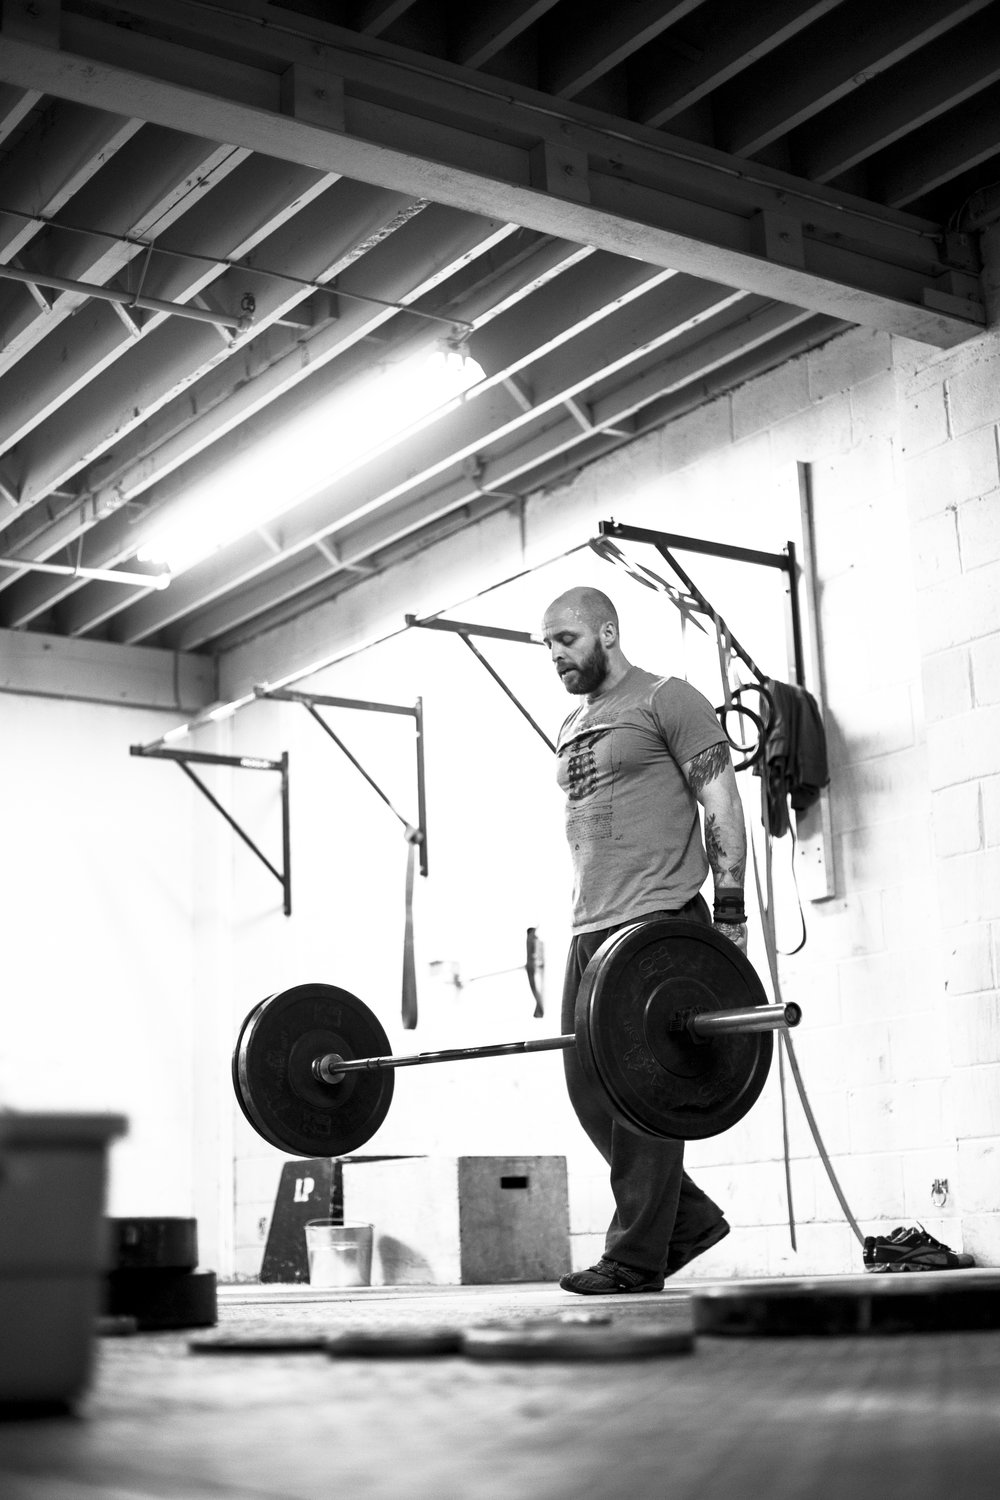 Owner of West Toronto Crossfit, Jeff MacWilliams, during the Crossfit Open 2015